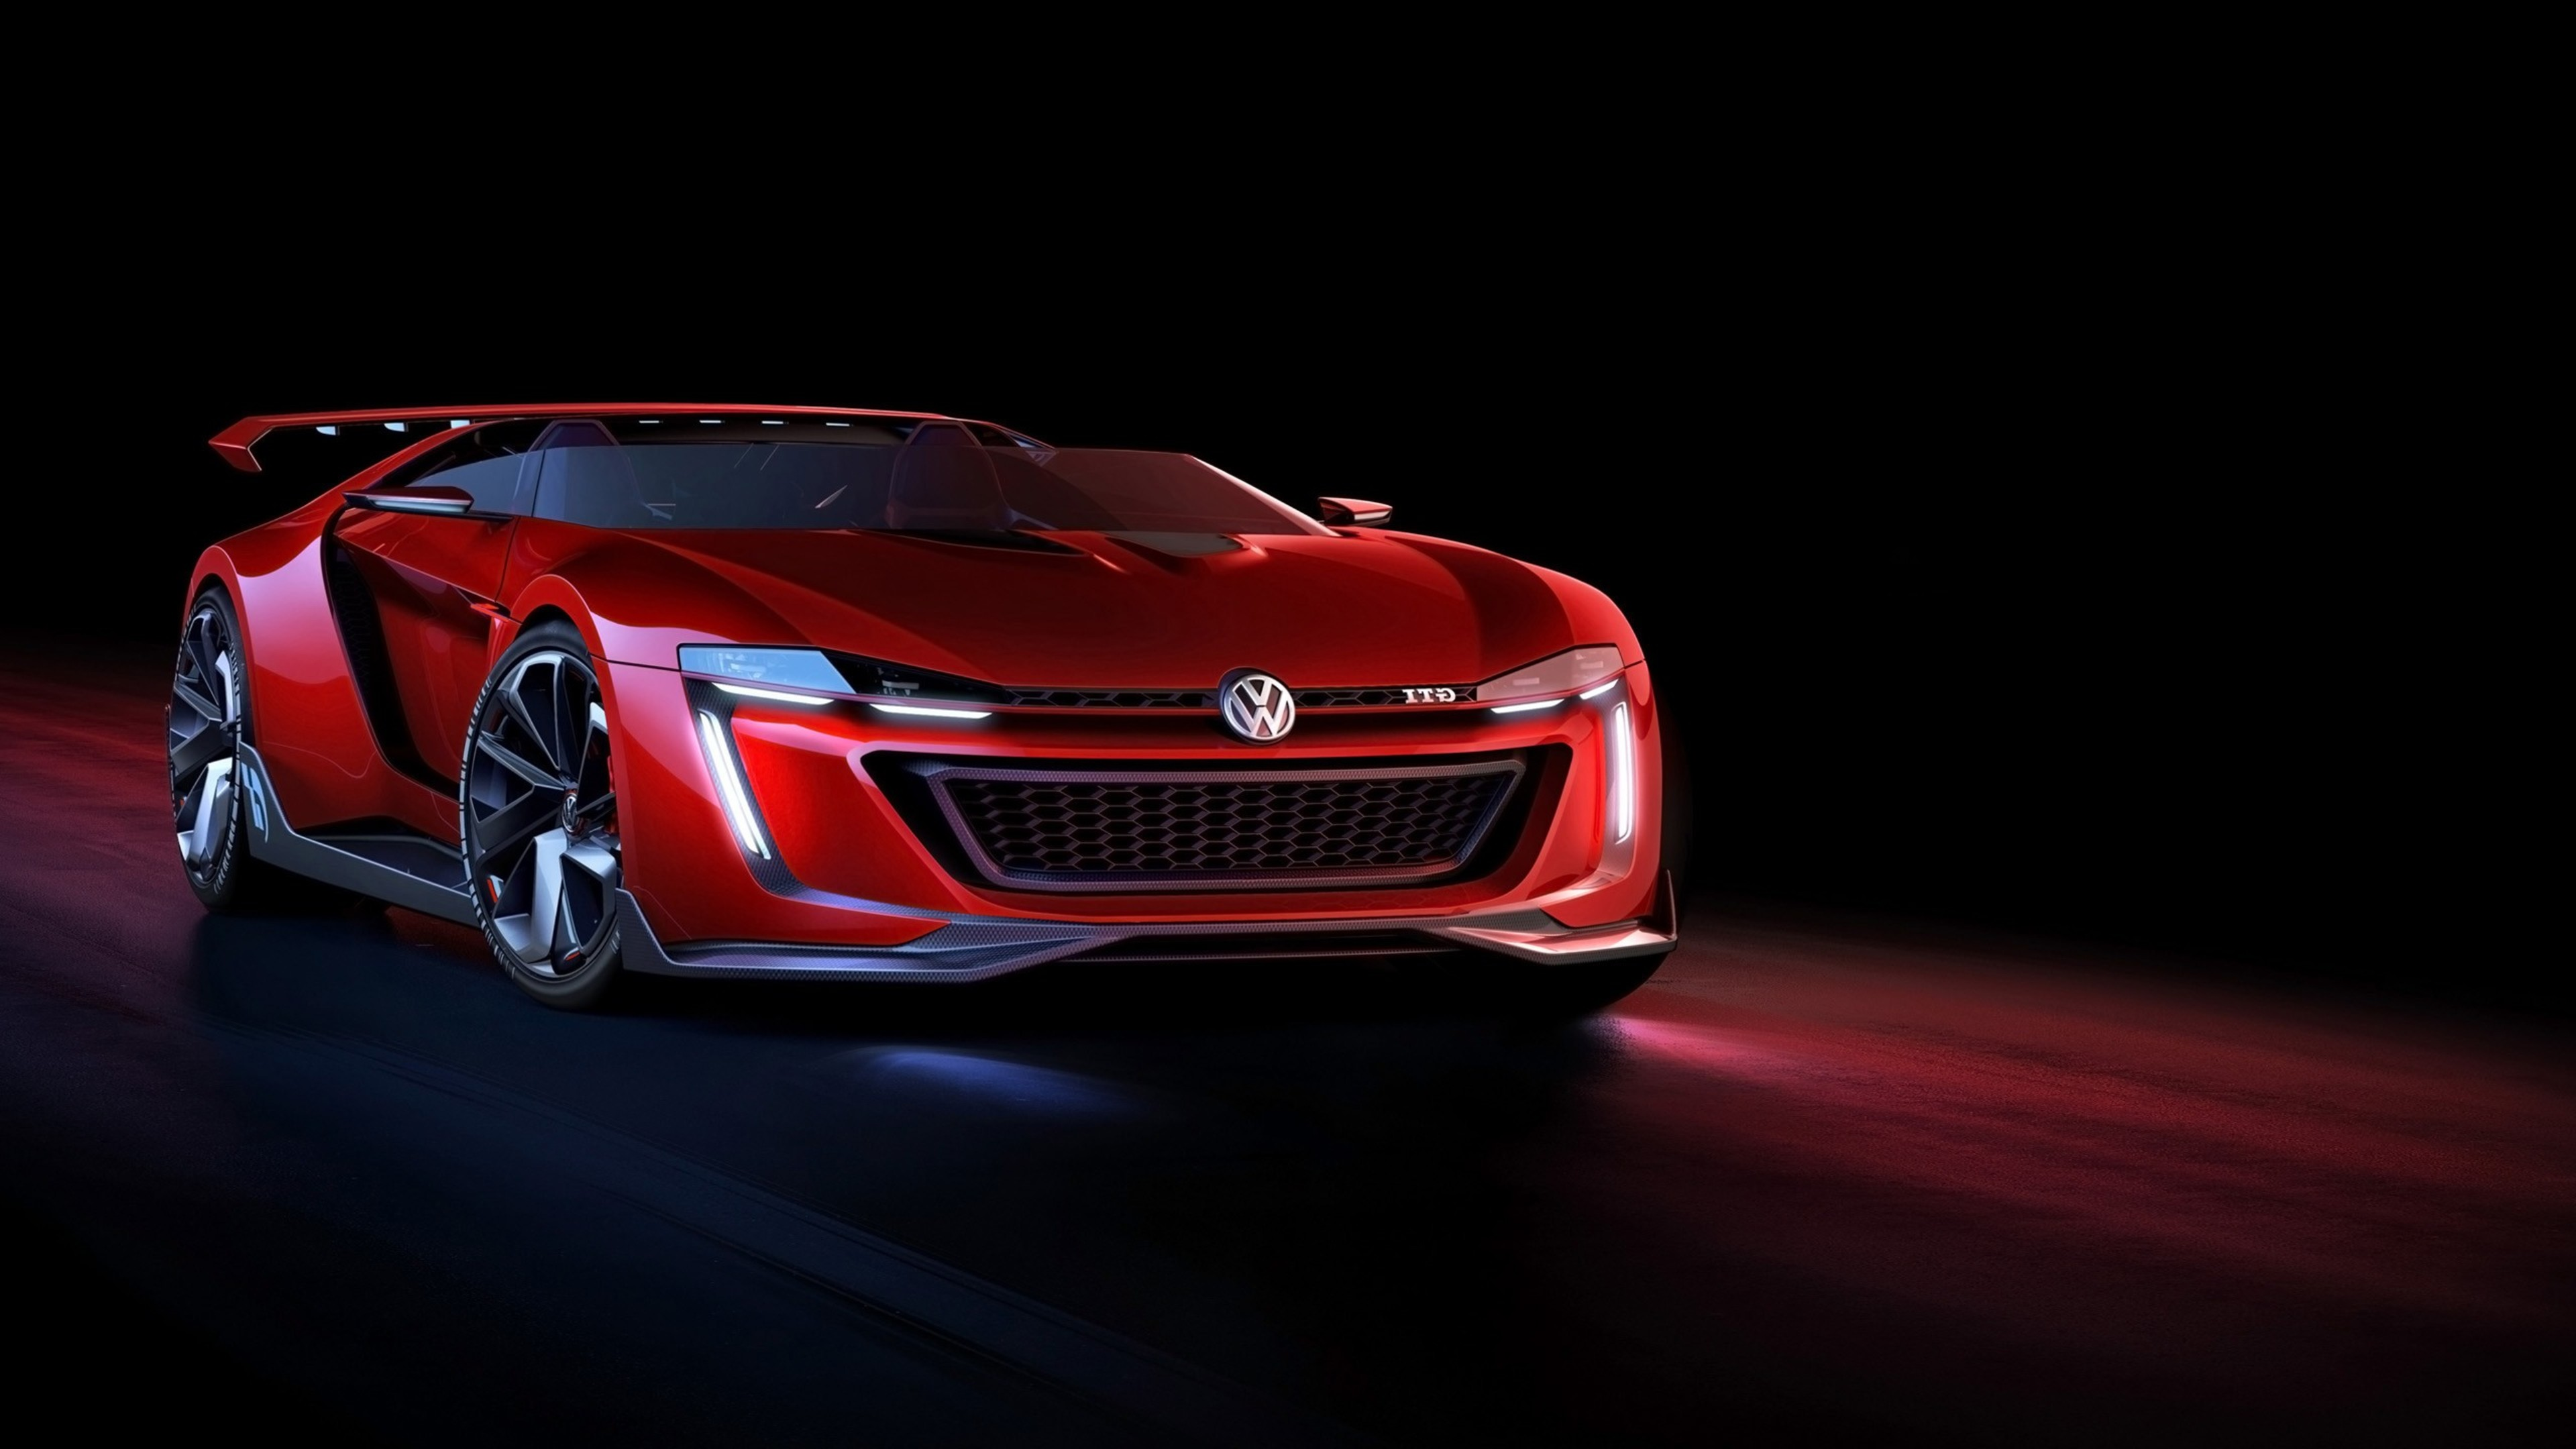 Volkswagen GTI Roadster, HD Cars, 4k Wallpapers, Images